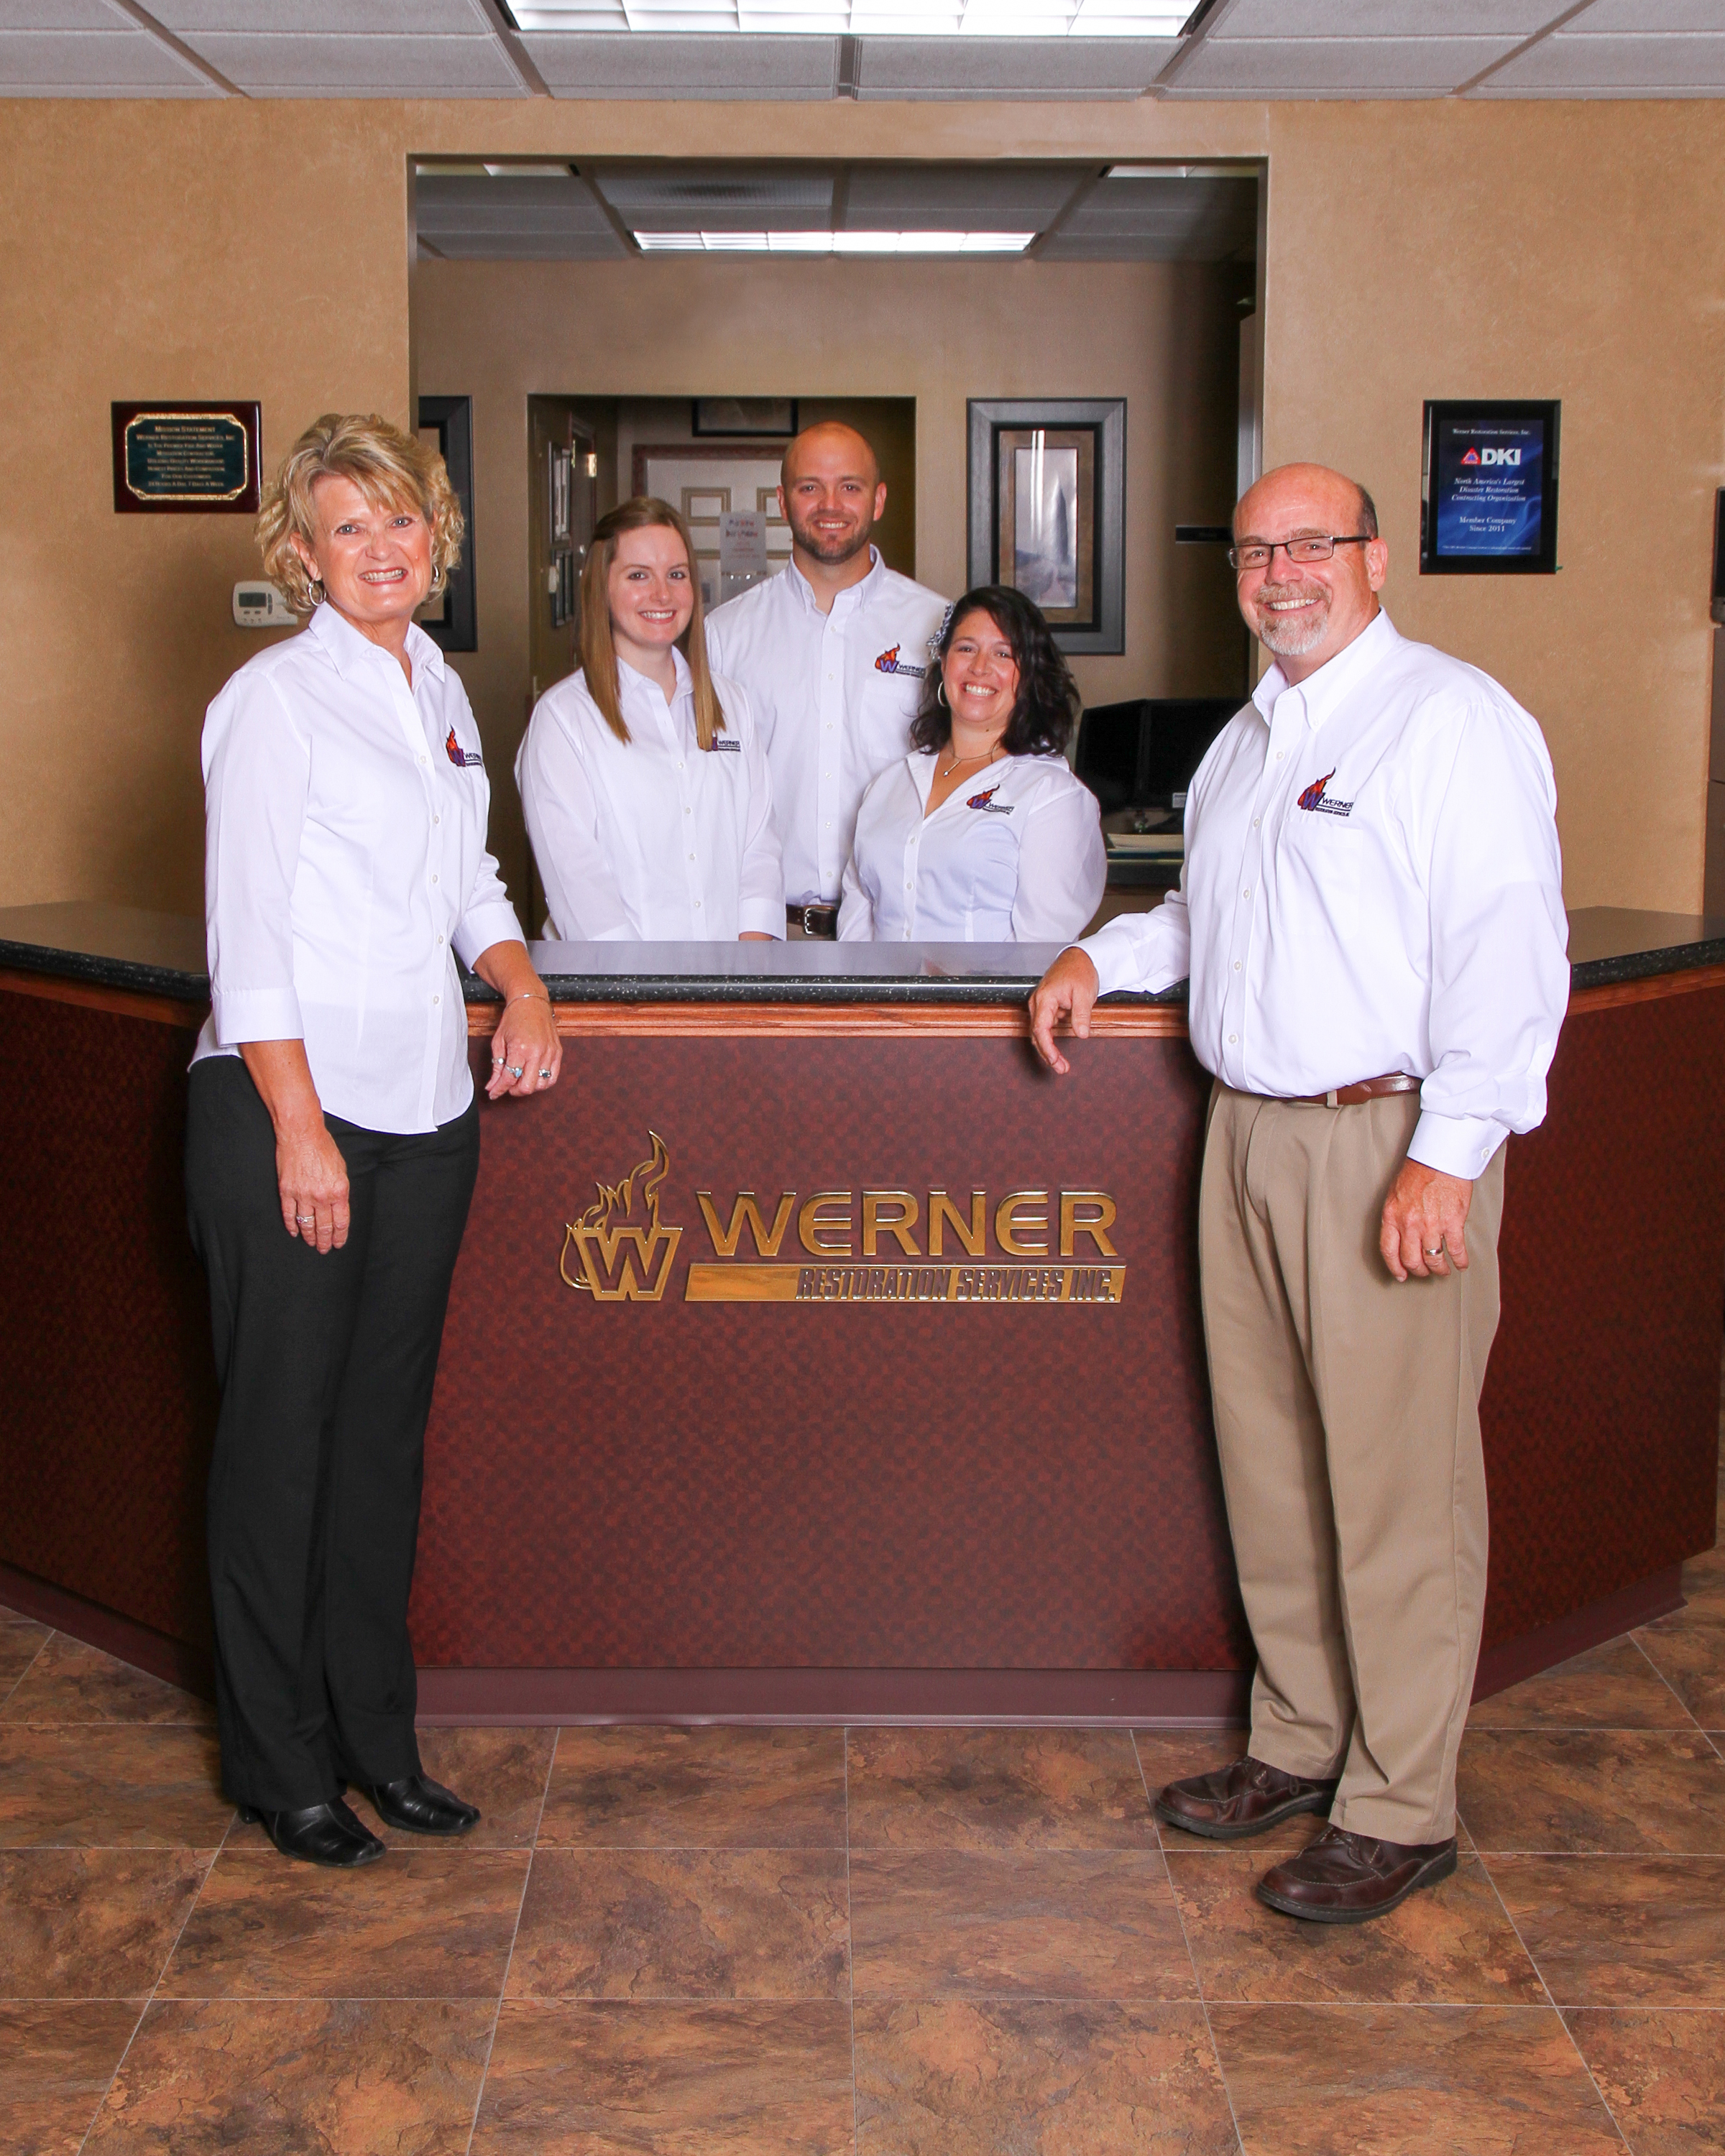 Werner Restoration services members pose for a picture at their office